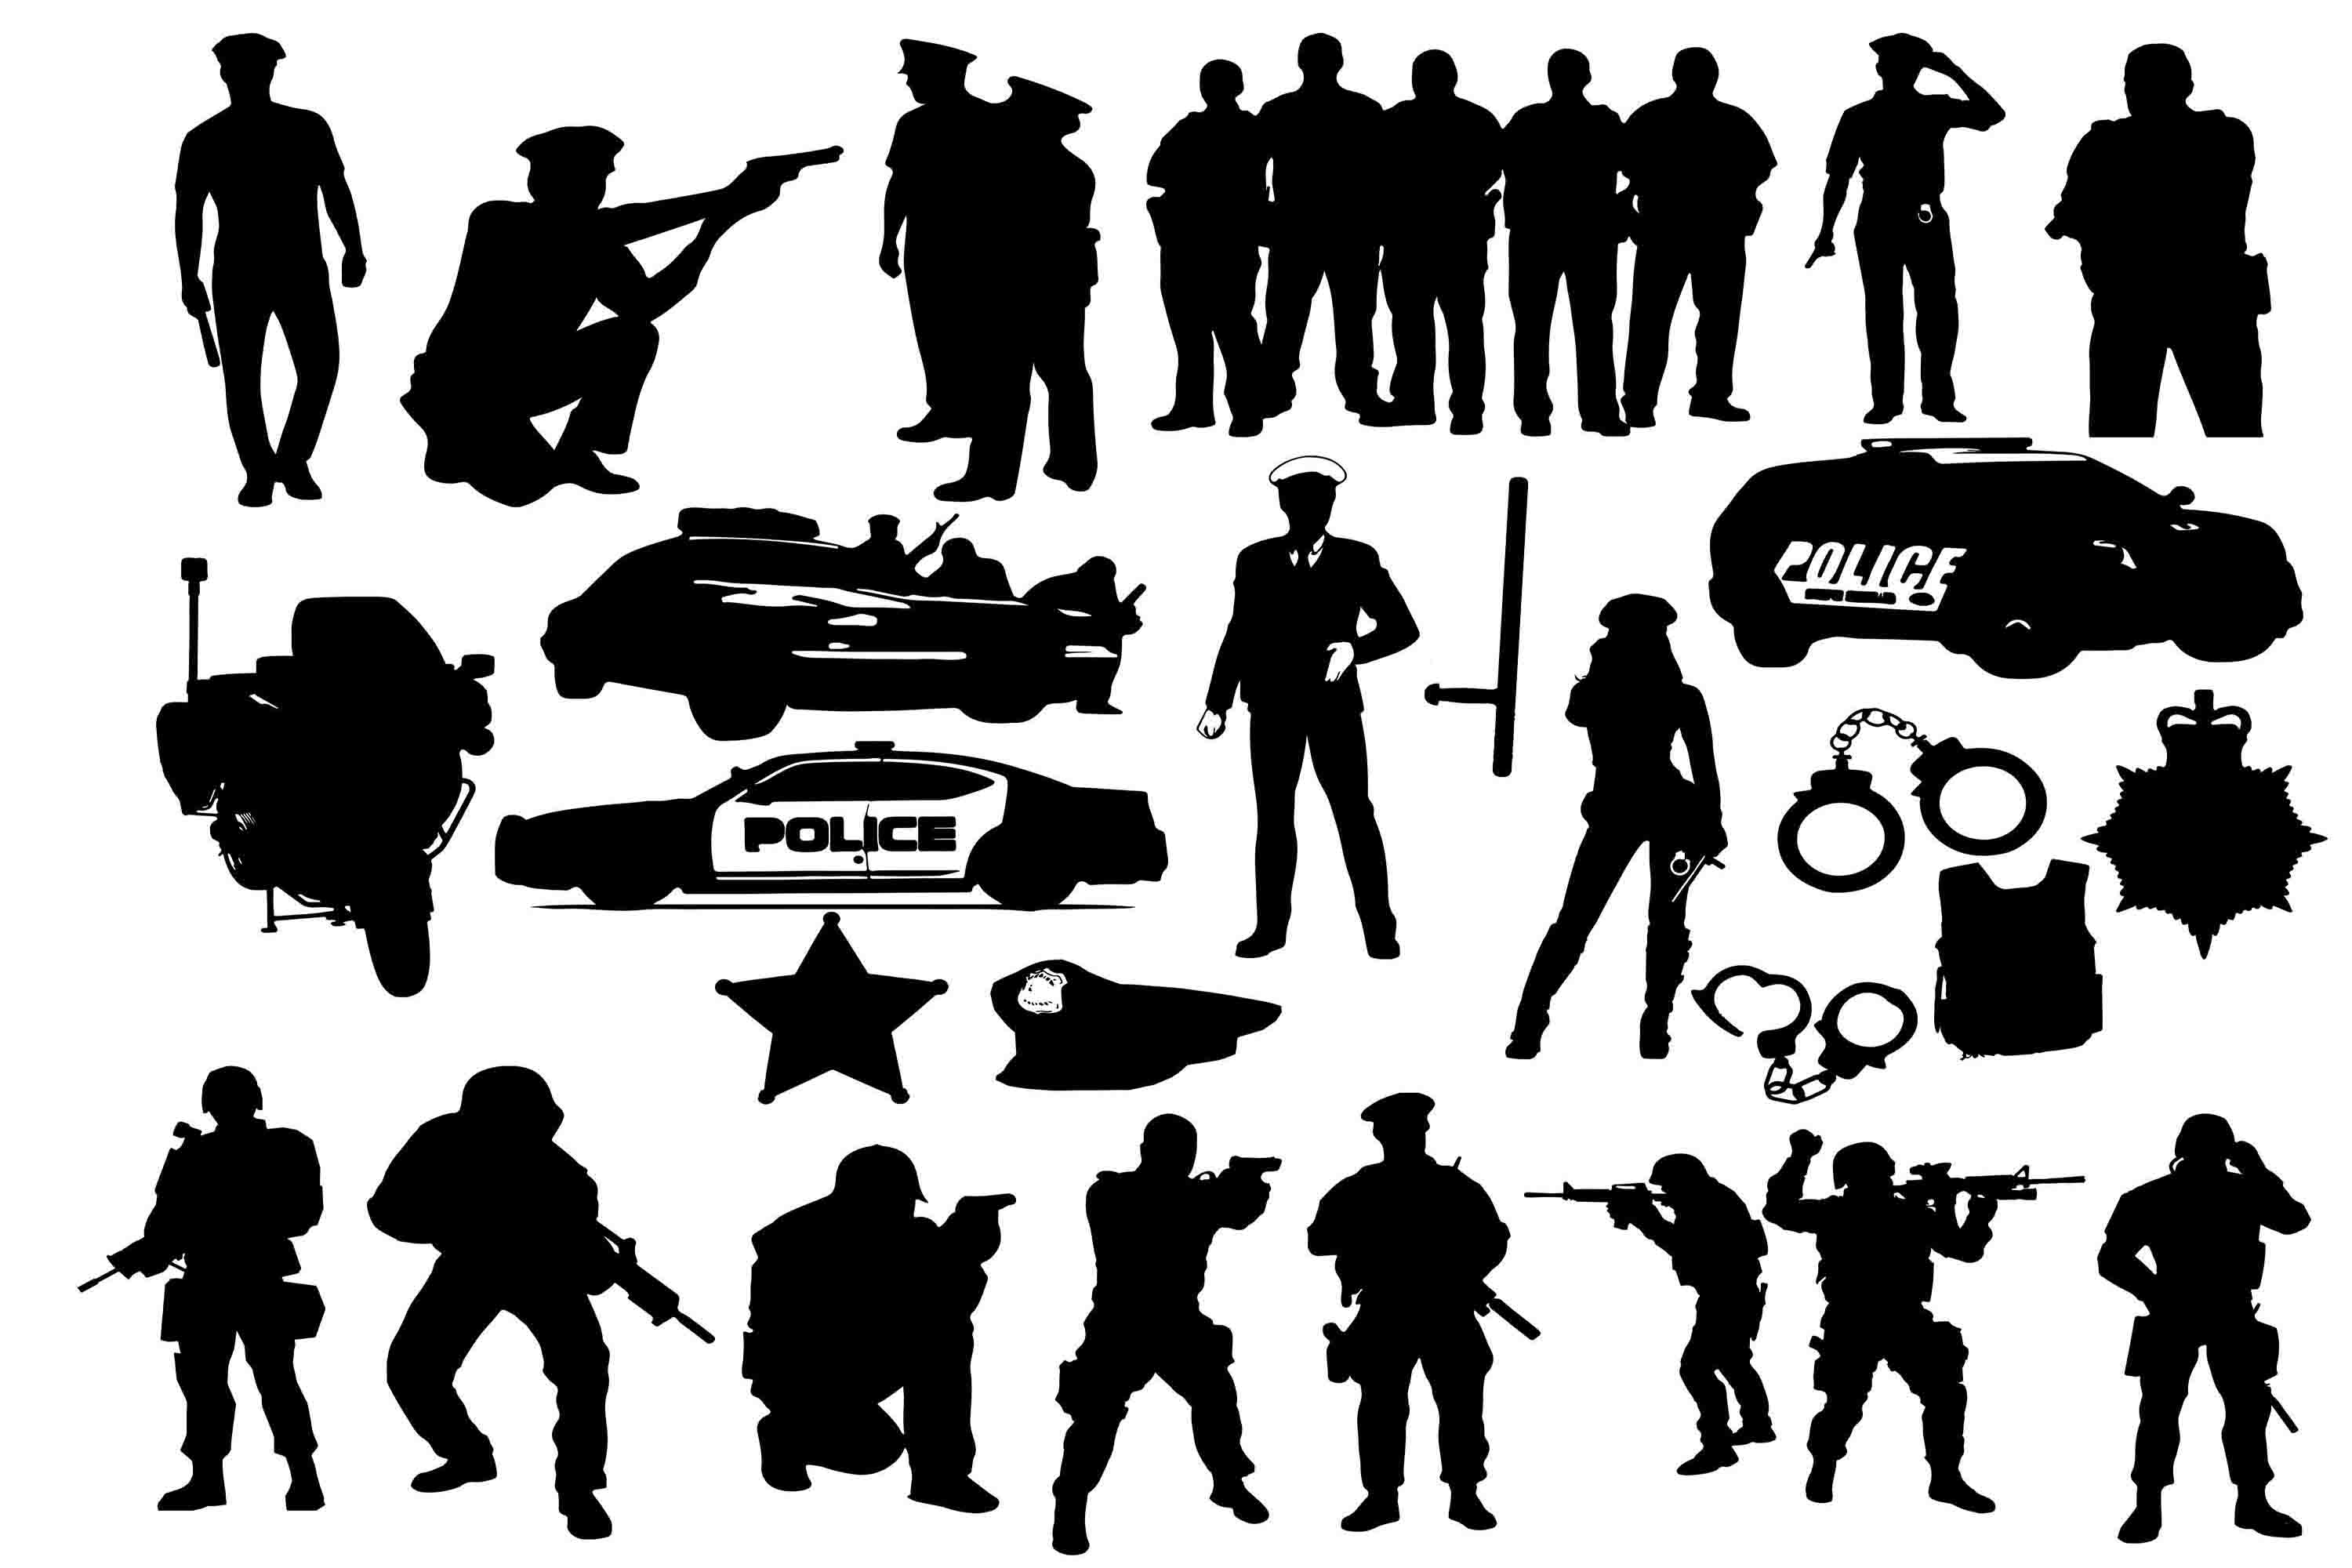 Download Free Police Silhouettes Graphic By Retrowalldecor Creative Fabrica for Cricut Explore, Silhouette and other cutting machines.